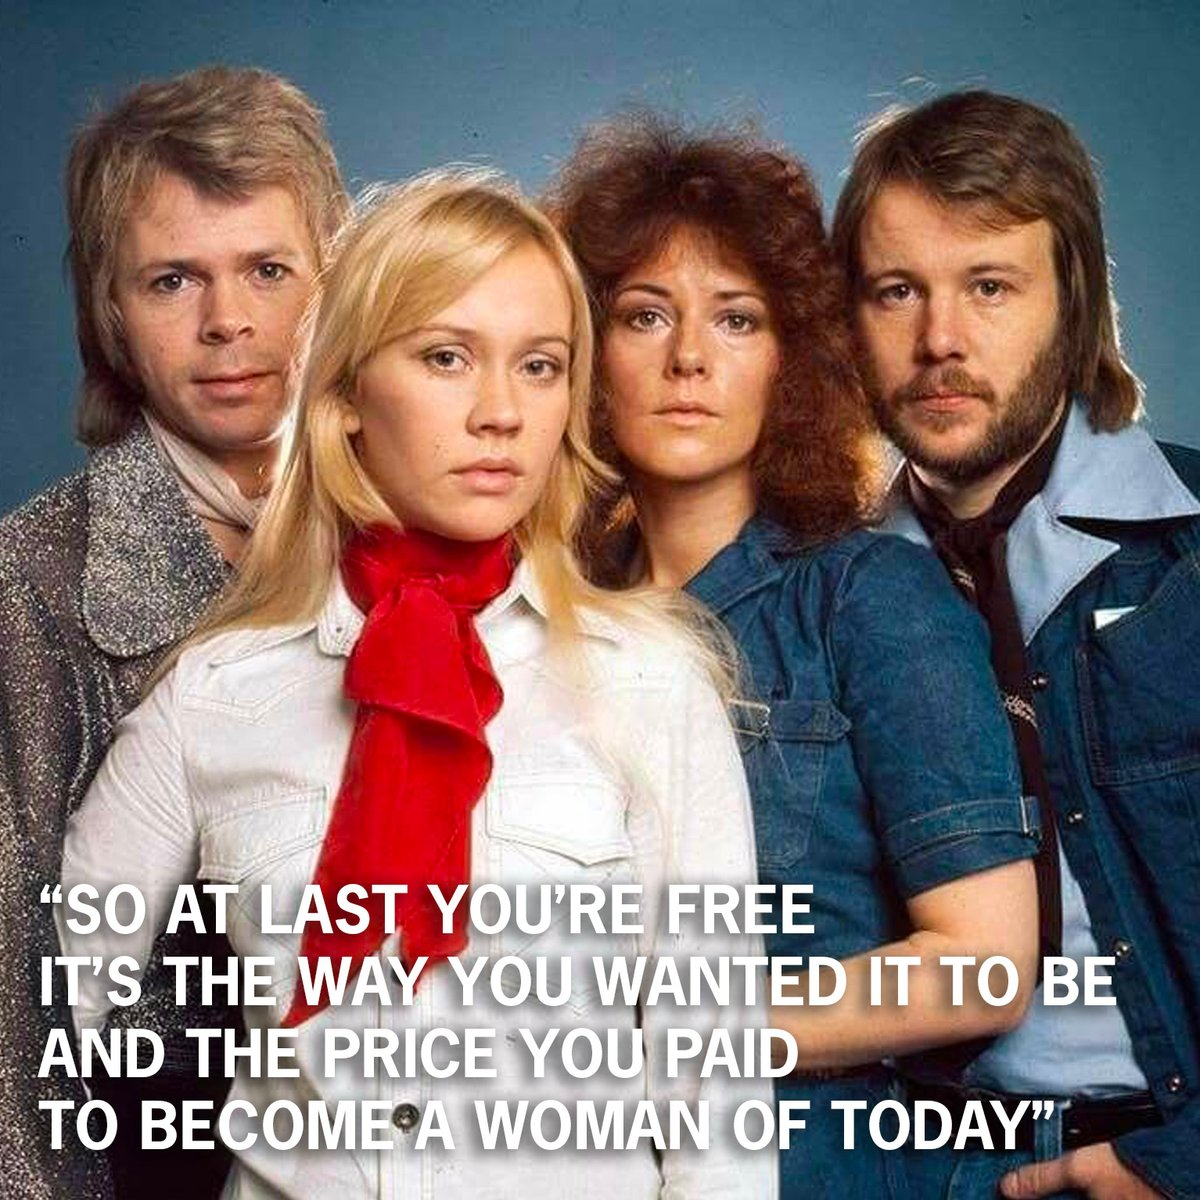 Today in 1974, ABBA start recording 'Hey, Hey Helen', later included on the 1975 album simply entitled ABBA. 🎶 #ABBA https://t.co/K4aUbJnVit